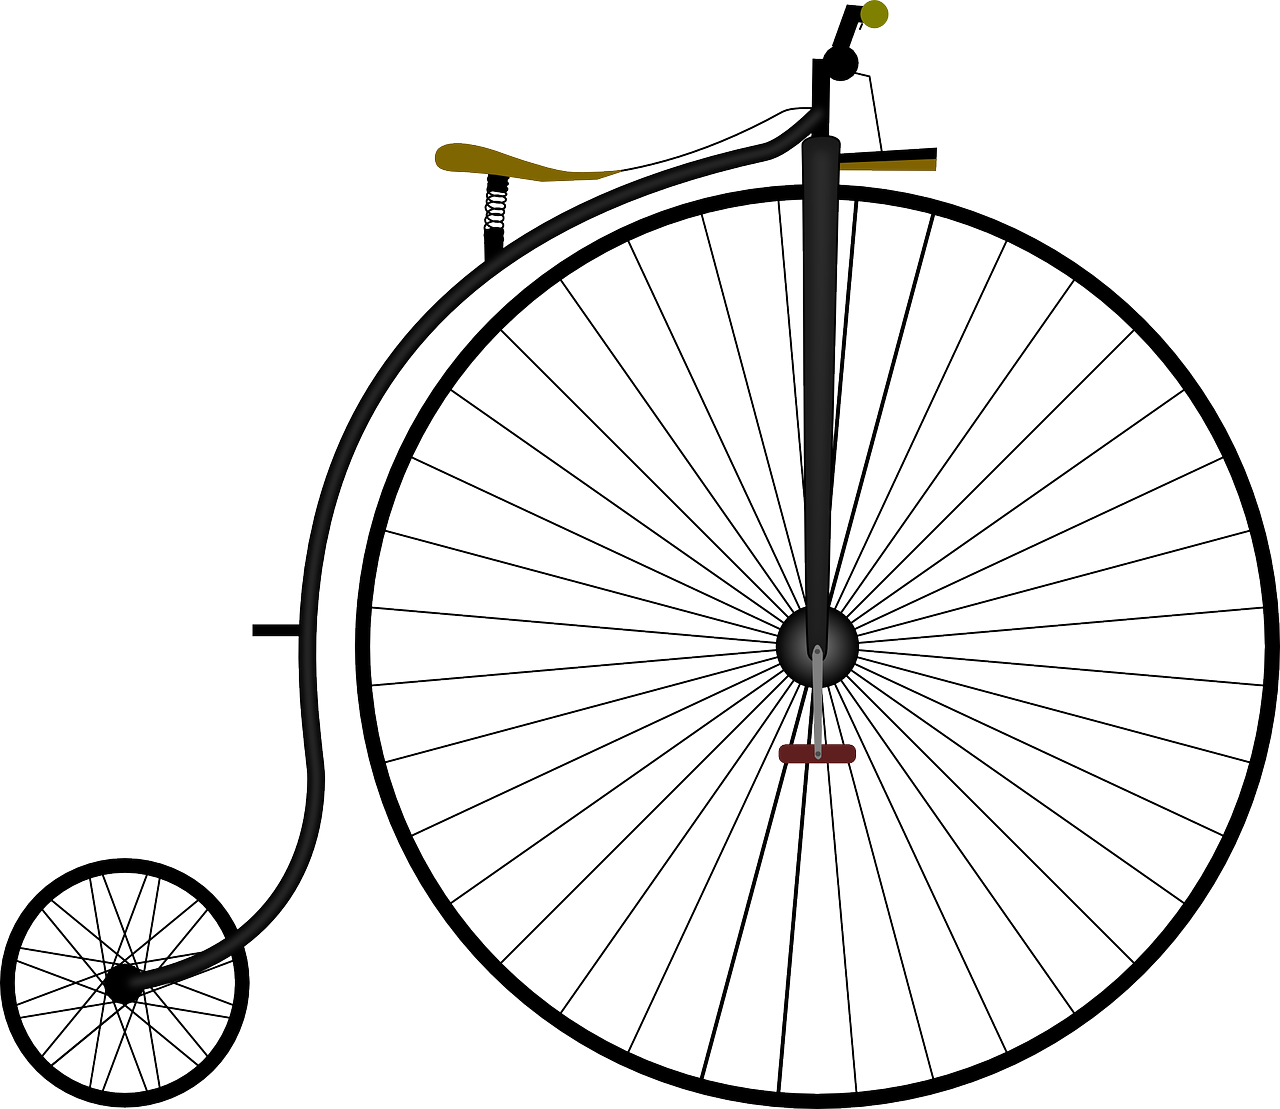 high-wheel bicycle,bicycle,high wheeler,bike,penny-farthing,transportation,free vector graphics,free pictures, free photos, free images, royalty free, free illustrations, public domain